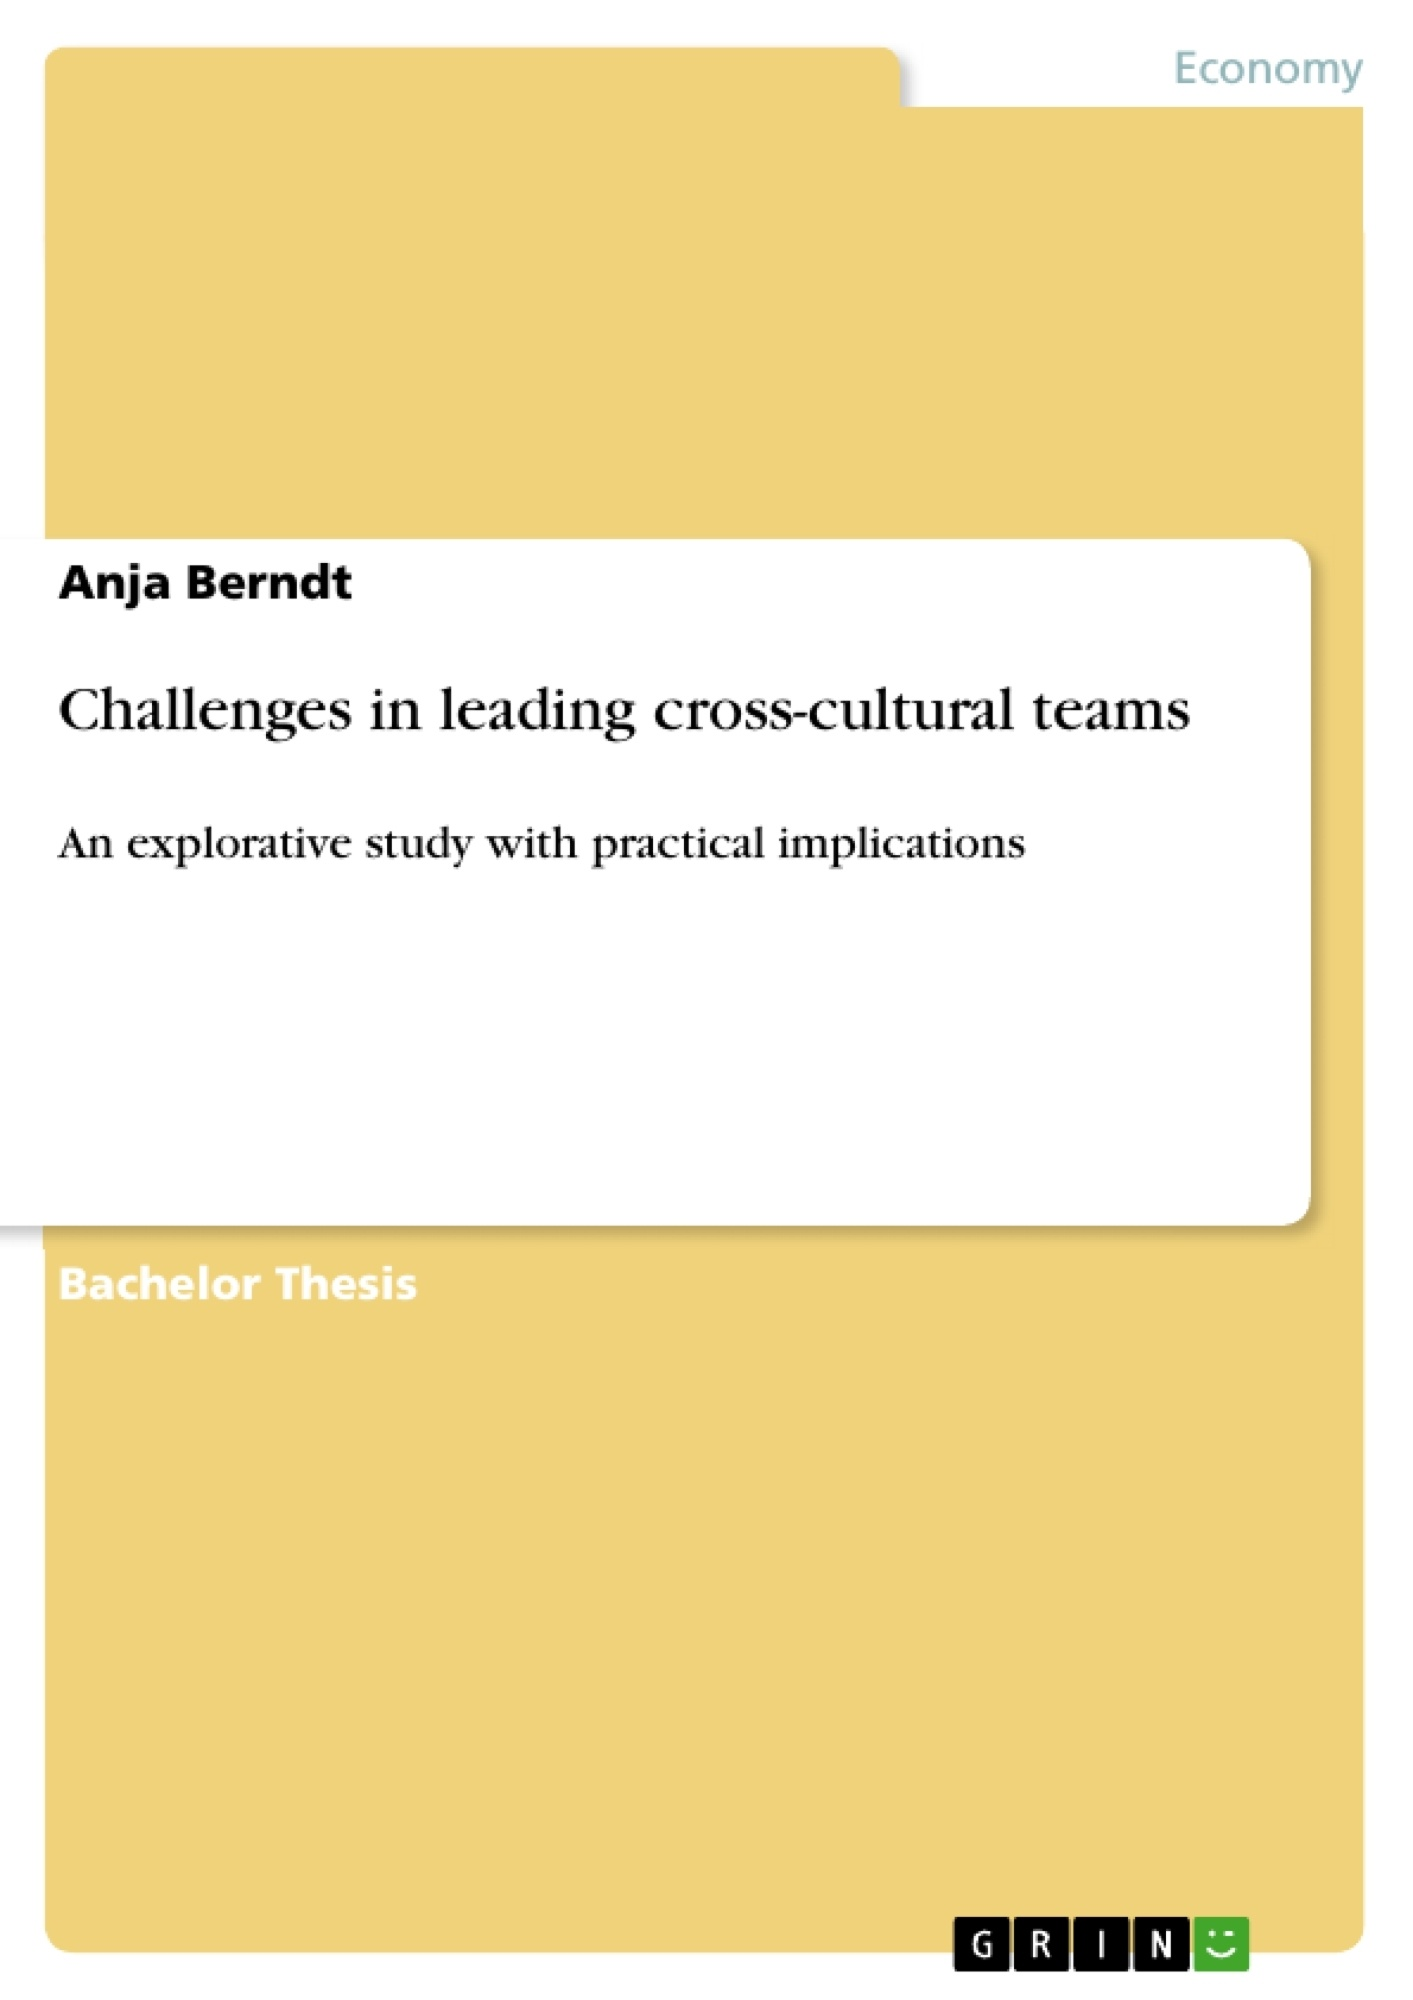 Title: Challenges in leading cross-cultural teams